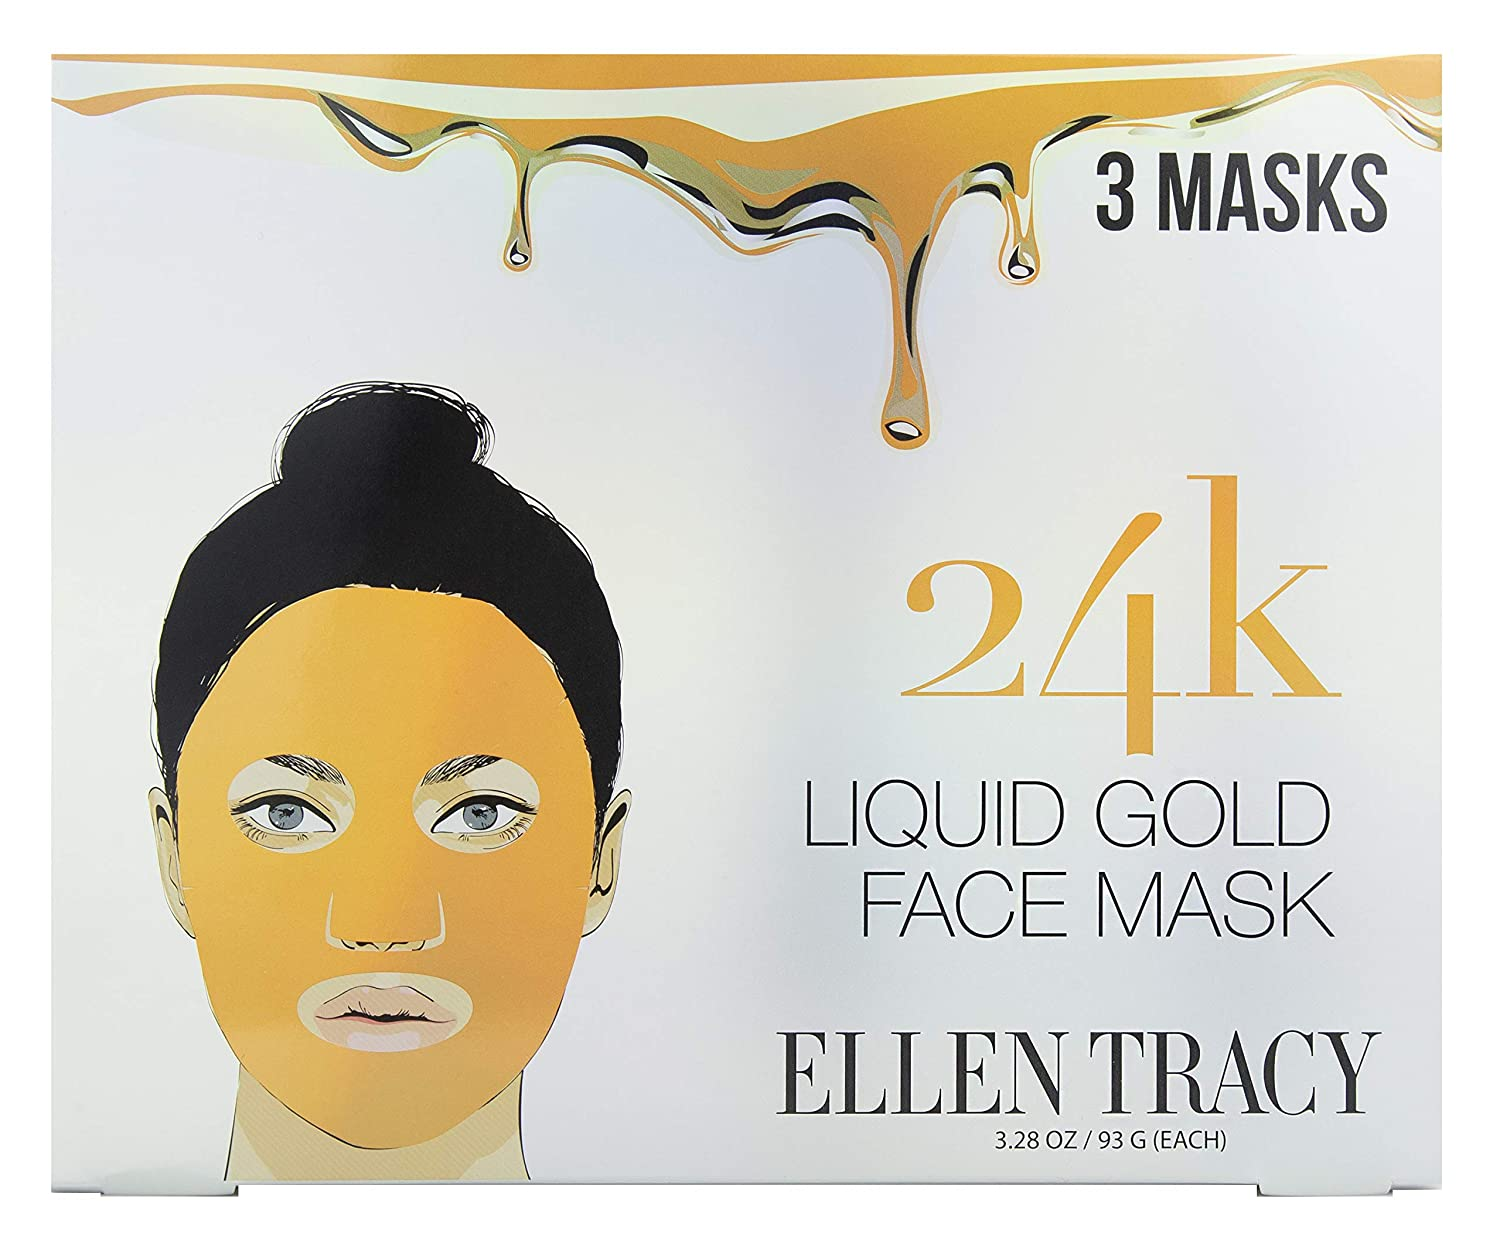 Ellen Tracy 24K Liquid Gold for Beautiful Glowing Skin - Anti Aging Facial Brightening, Moisturizing, Reduces Lines, Wrinkles and Acne - Pack of 3